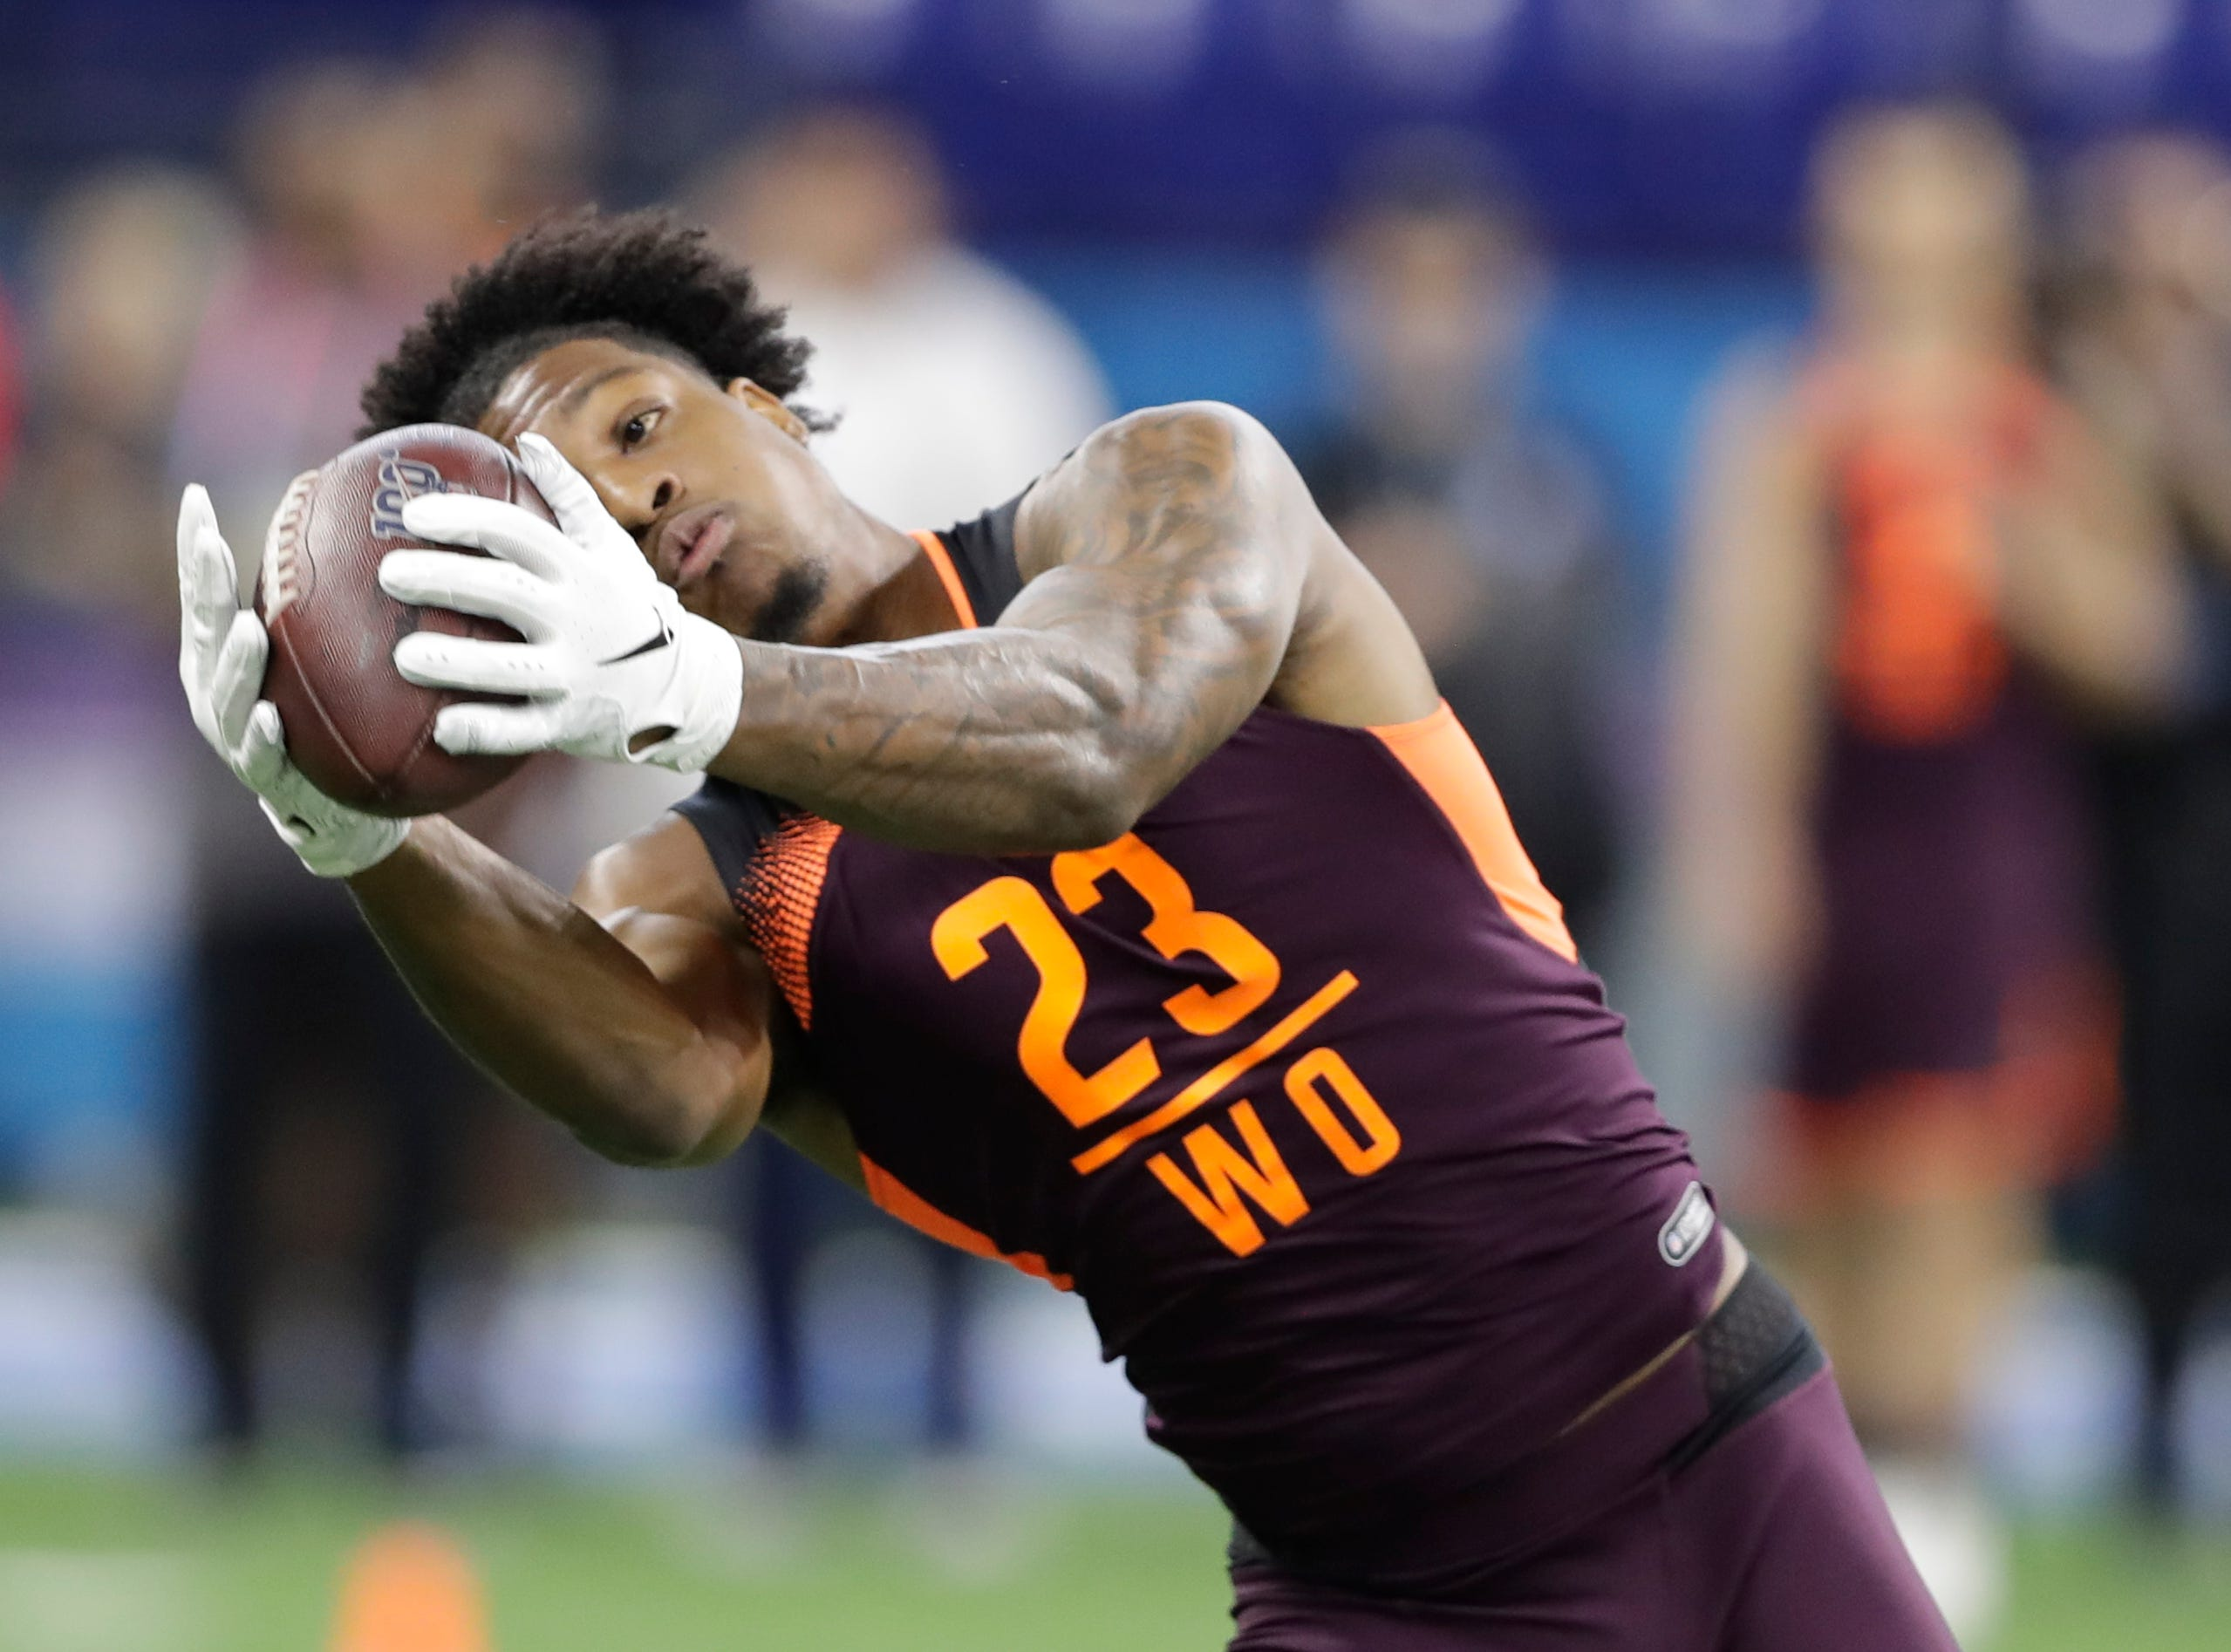 Arizona State wide receiver N'Keal Harry runs a drill during the NFL football scouting combine, Saturday, March 2, 2019, in Indianapolis. (AP Photo/Darron Cummings)